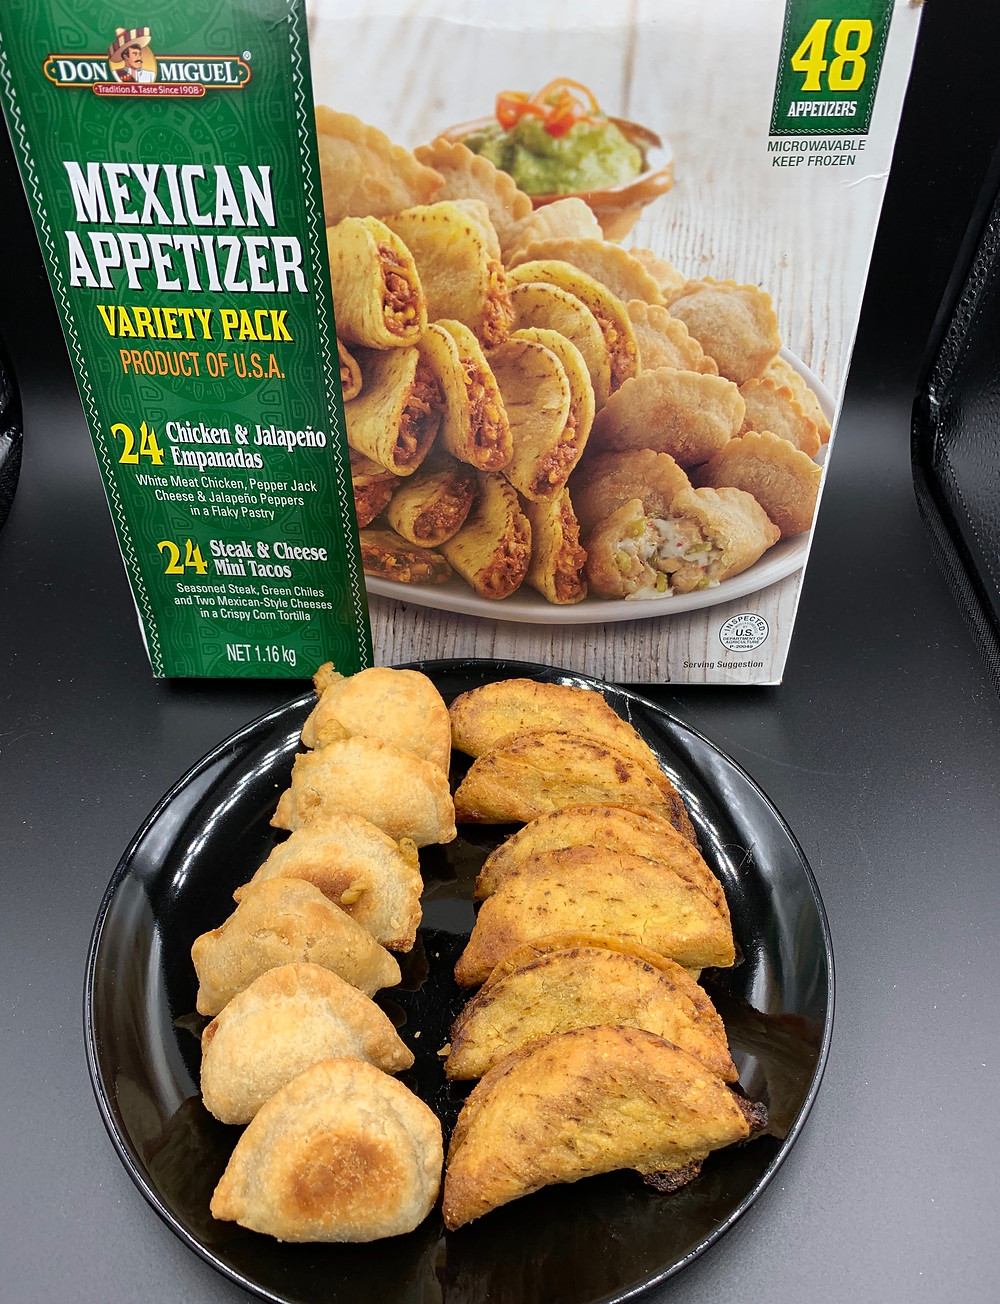 Costco Don Miguel Mexican Appetizer Variety Pack